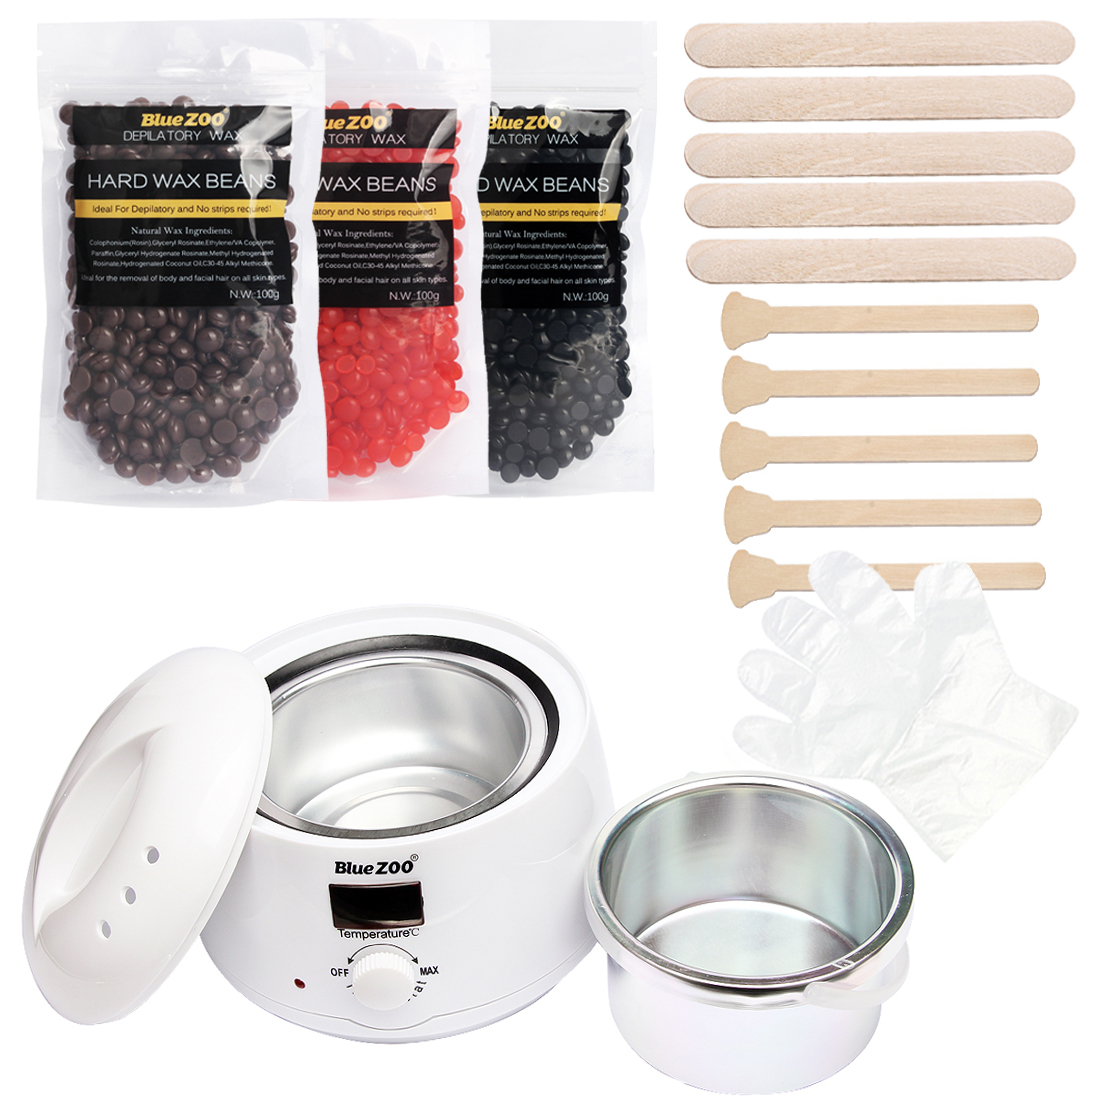 Wax Heater Set Wax Beans No Paper Needed Waxing Hair Removal Machine For Depilation With 3 Bag 100g Hot Hard Beans depilation wax beans no strip depilatory home and beauty tools hair remover wax heater waxing kit hair removal set with tools